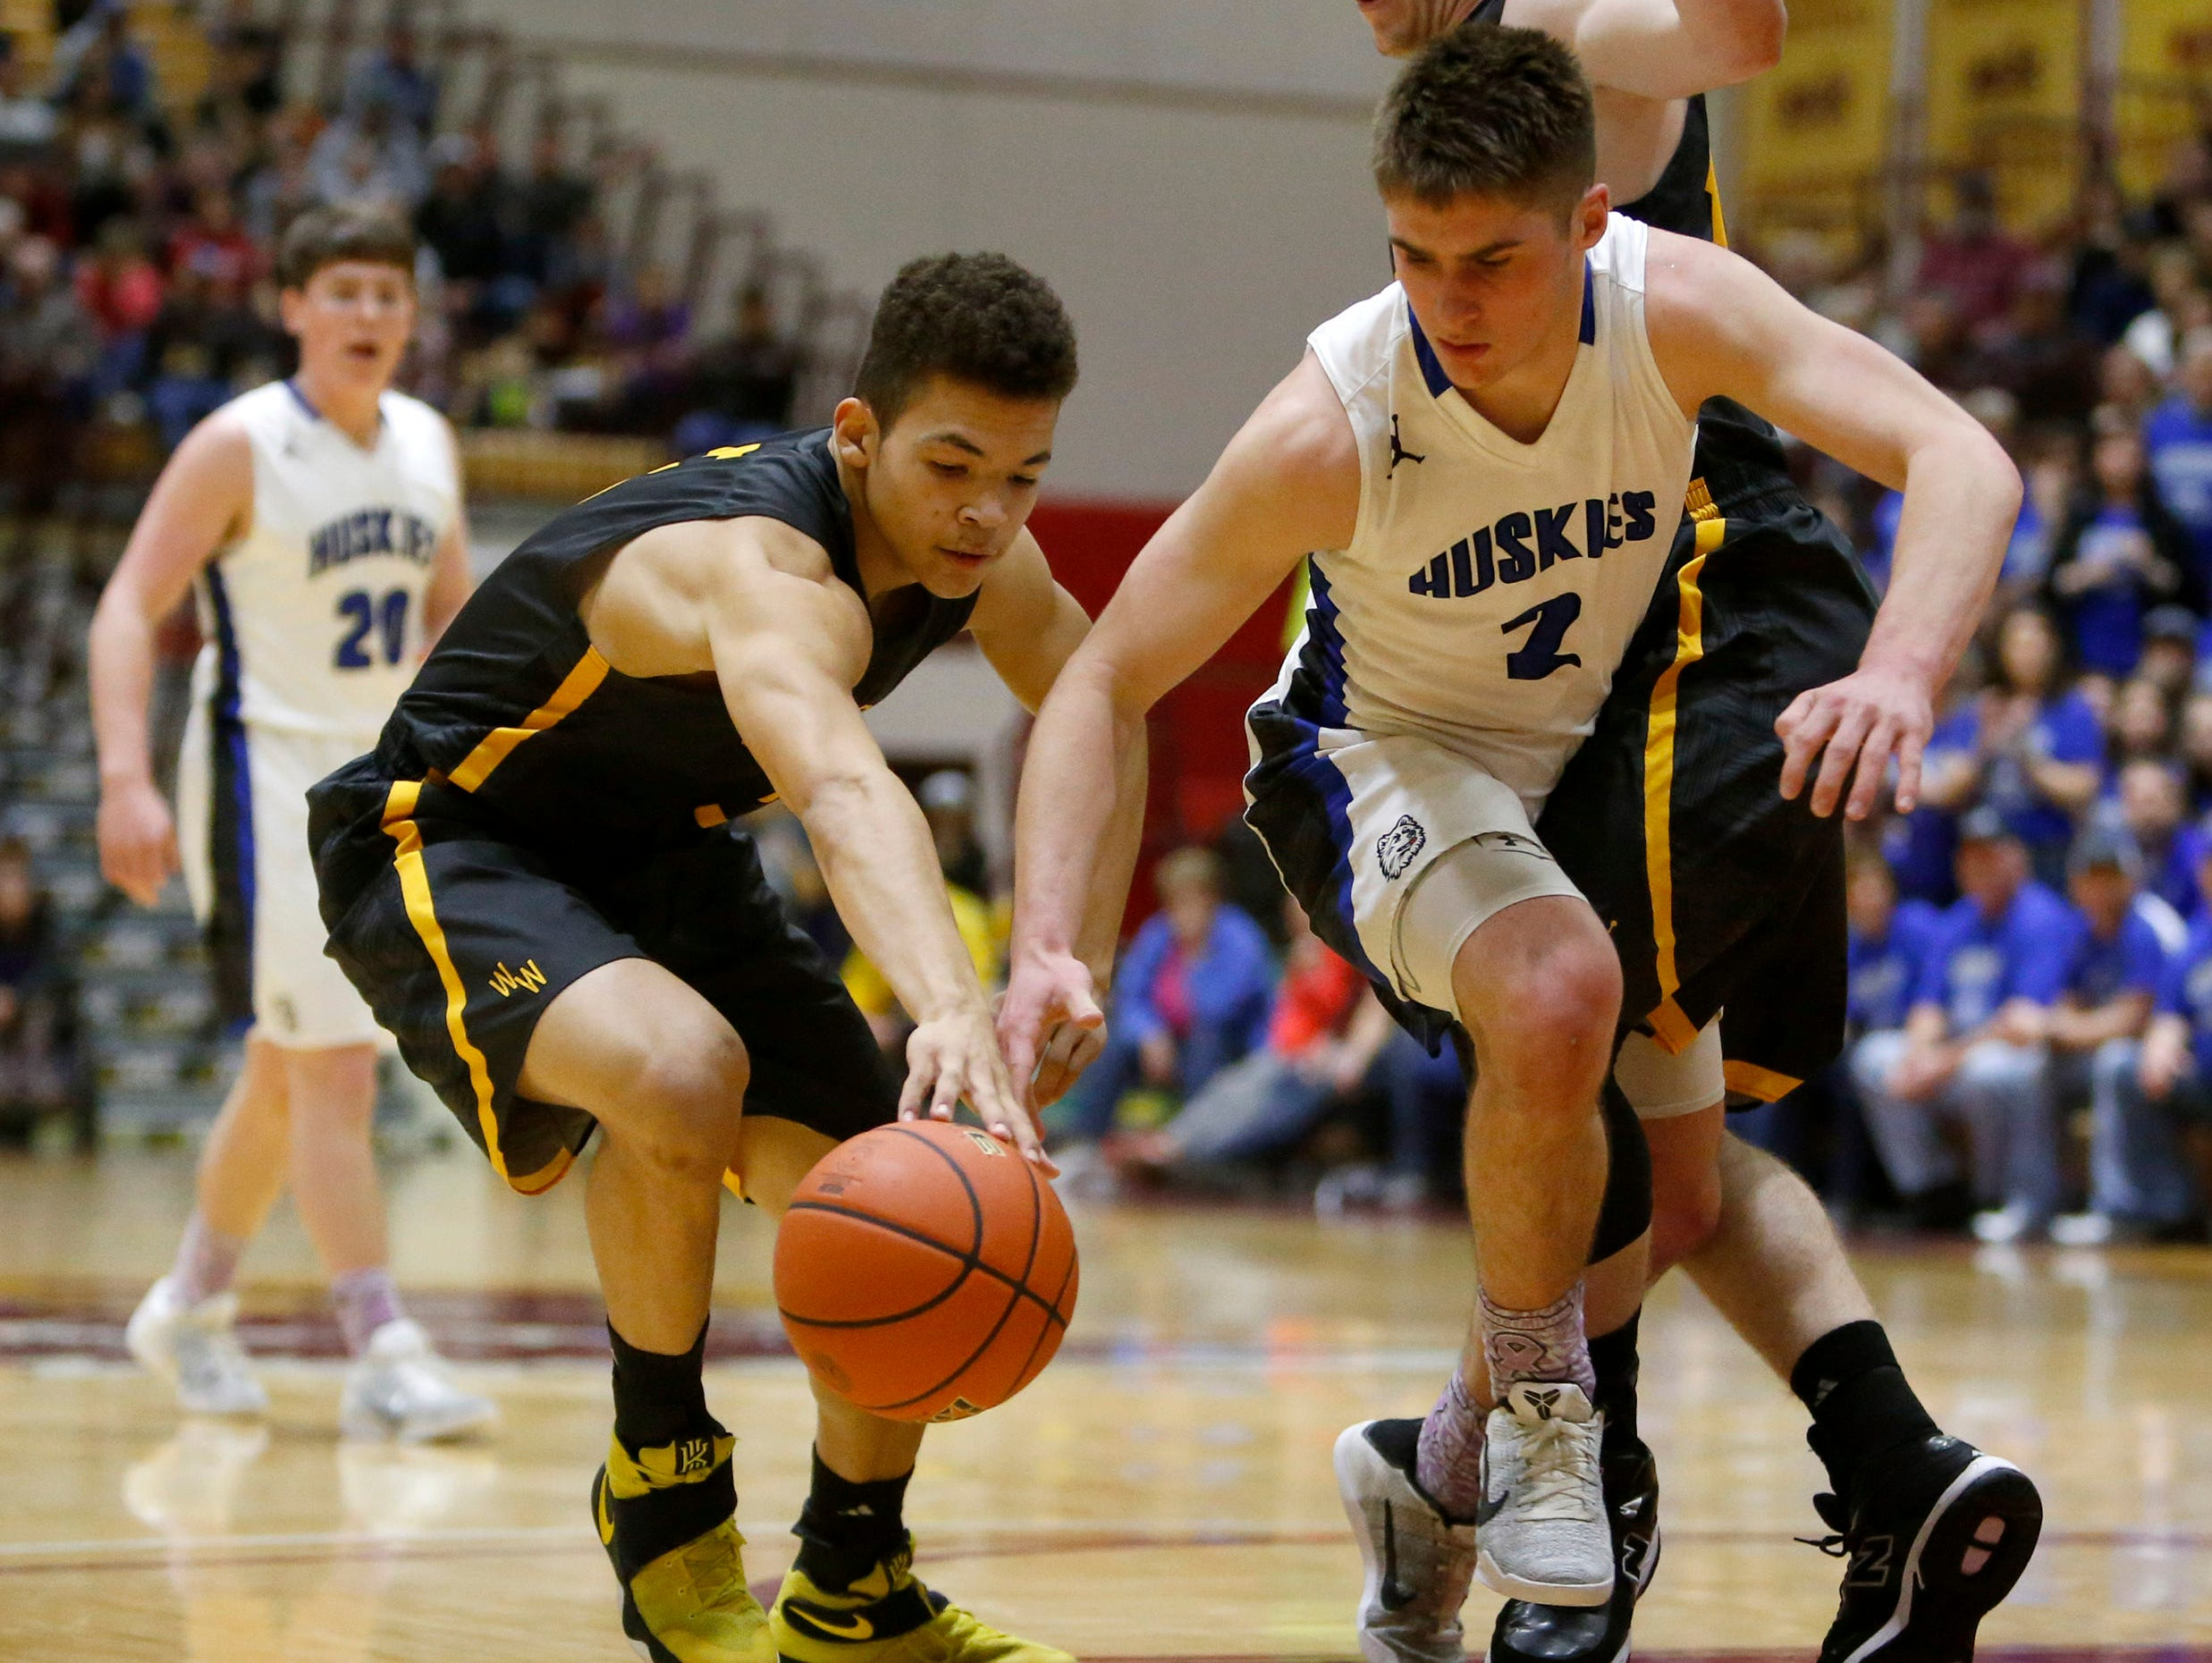 Wolsey-Wessington's Lynden Williams, left and Bridgewater-Emery's Jamin Arend, center, go after the ball as the Warbirds' Tyler Babcock, right, avoids a foul during Saturday's championship game at the South Dakota Class B Boys Basketball Tournament at Wachs Arena.